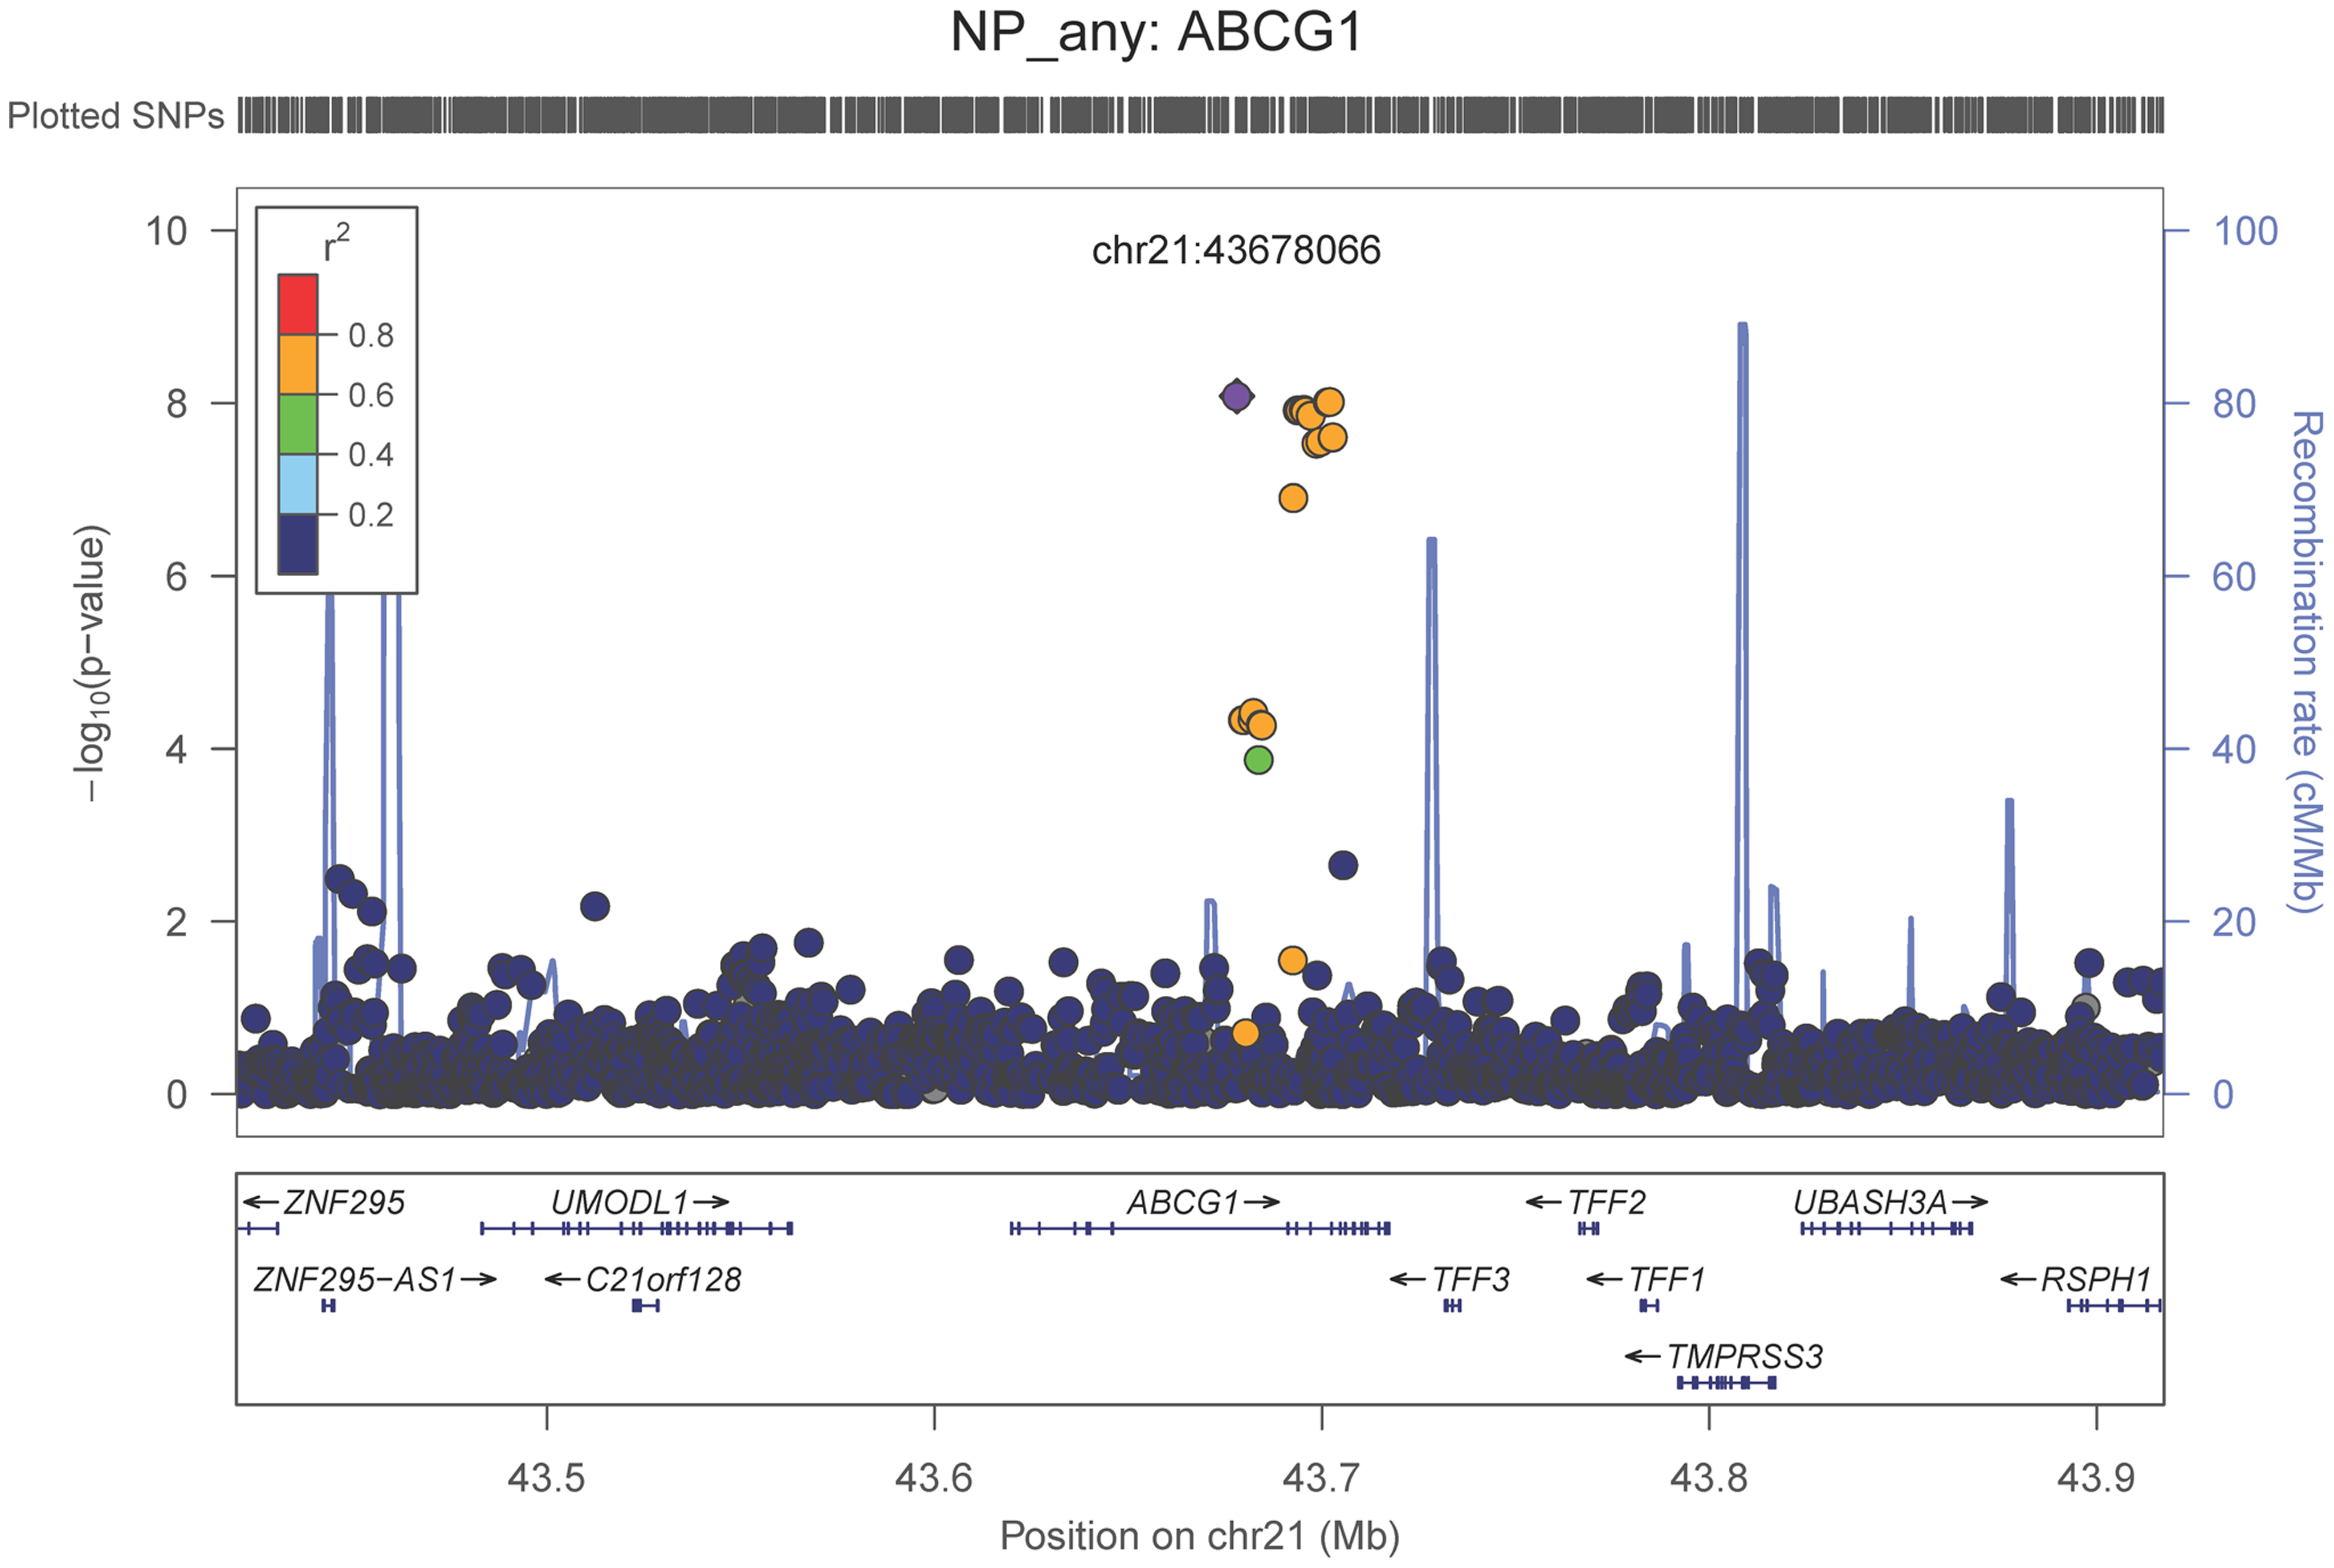 Regional association plot for <i>ABCG1</i> and the neuritic plaque (any vs. none) analysis.